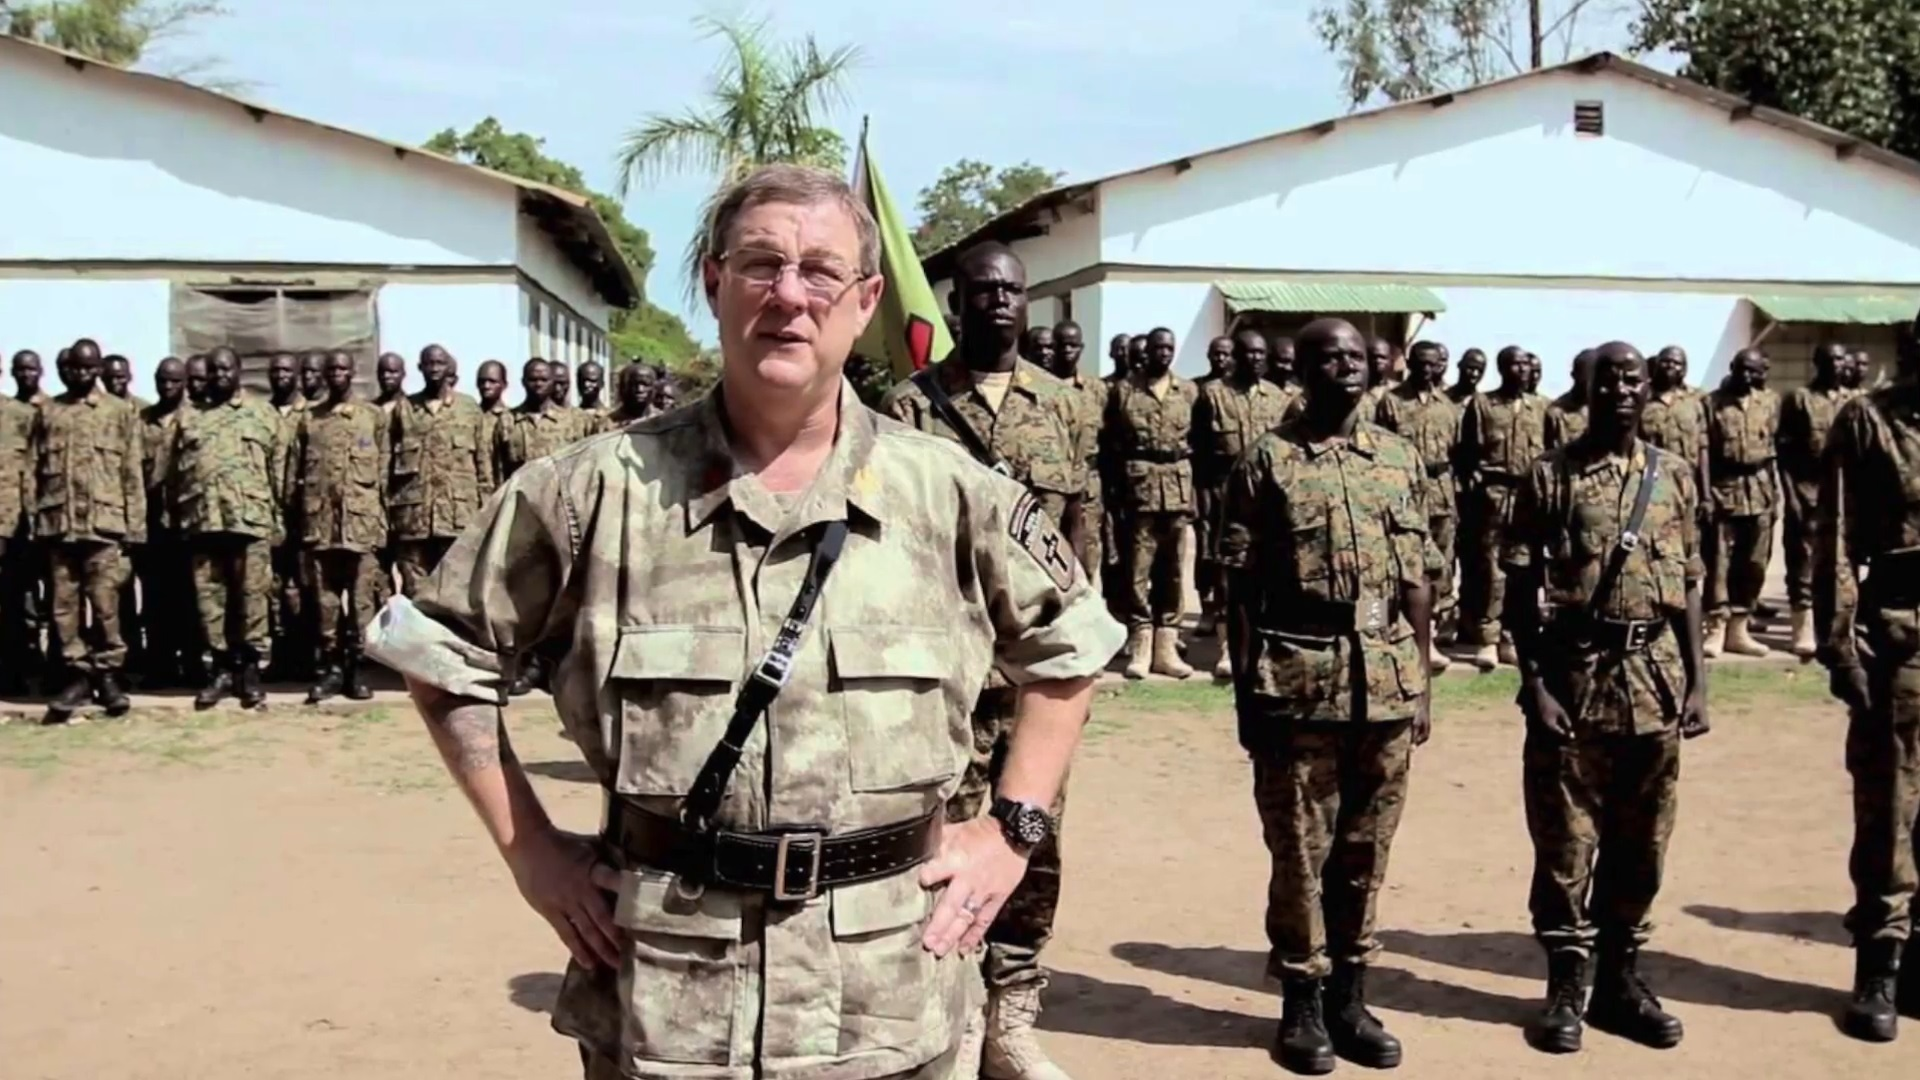 Amidst unrest, South Sudanese soldiers will get God's Word